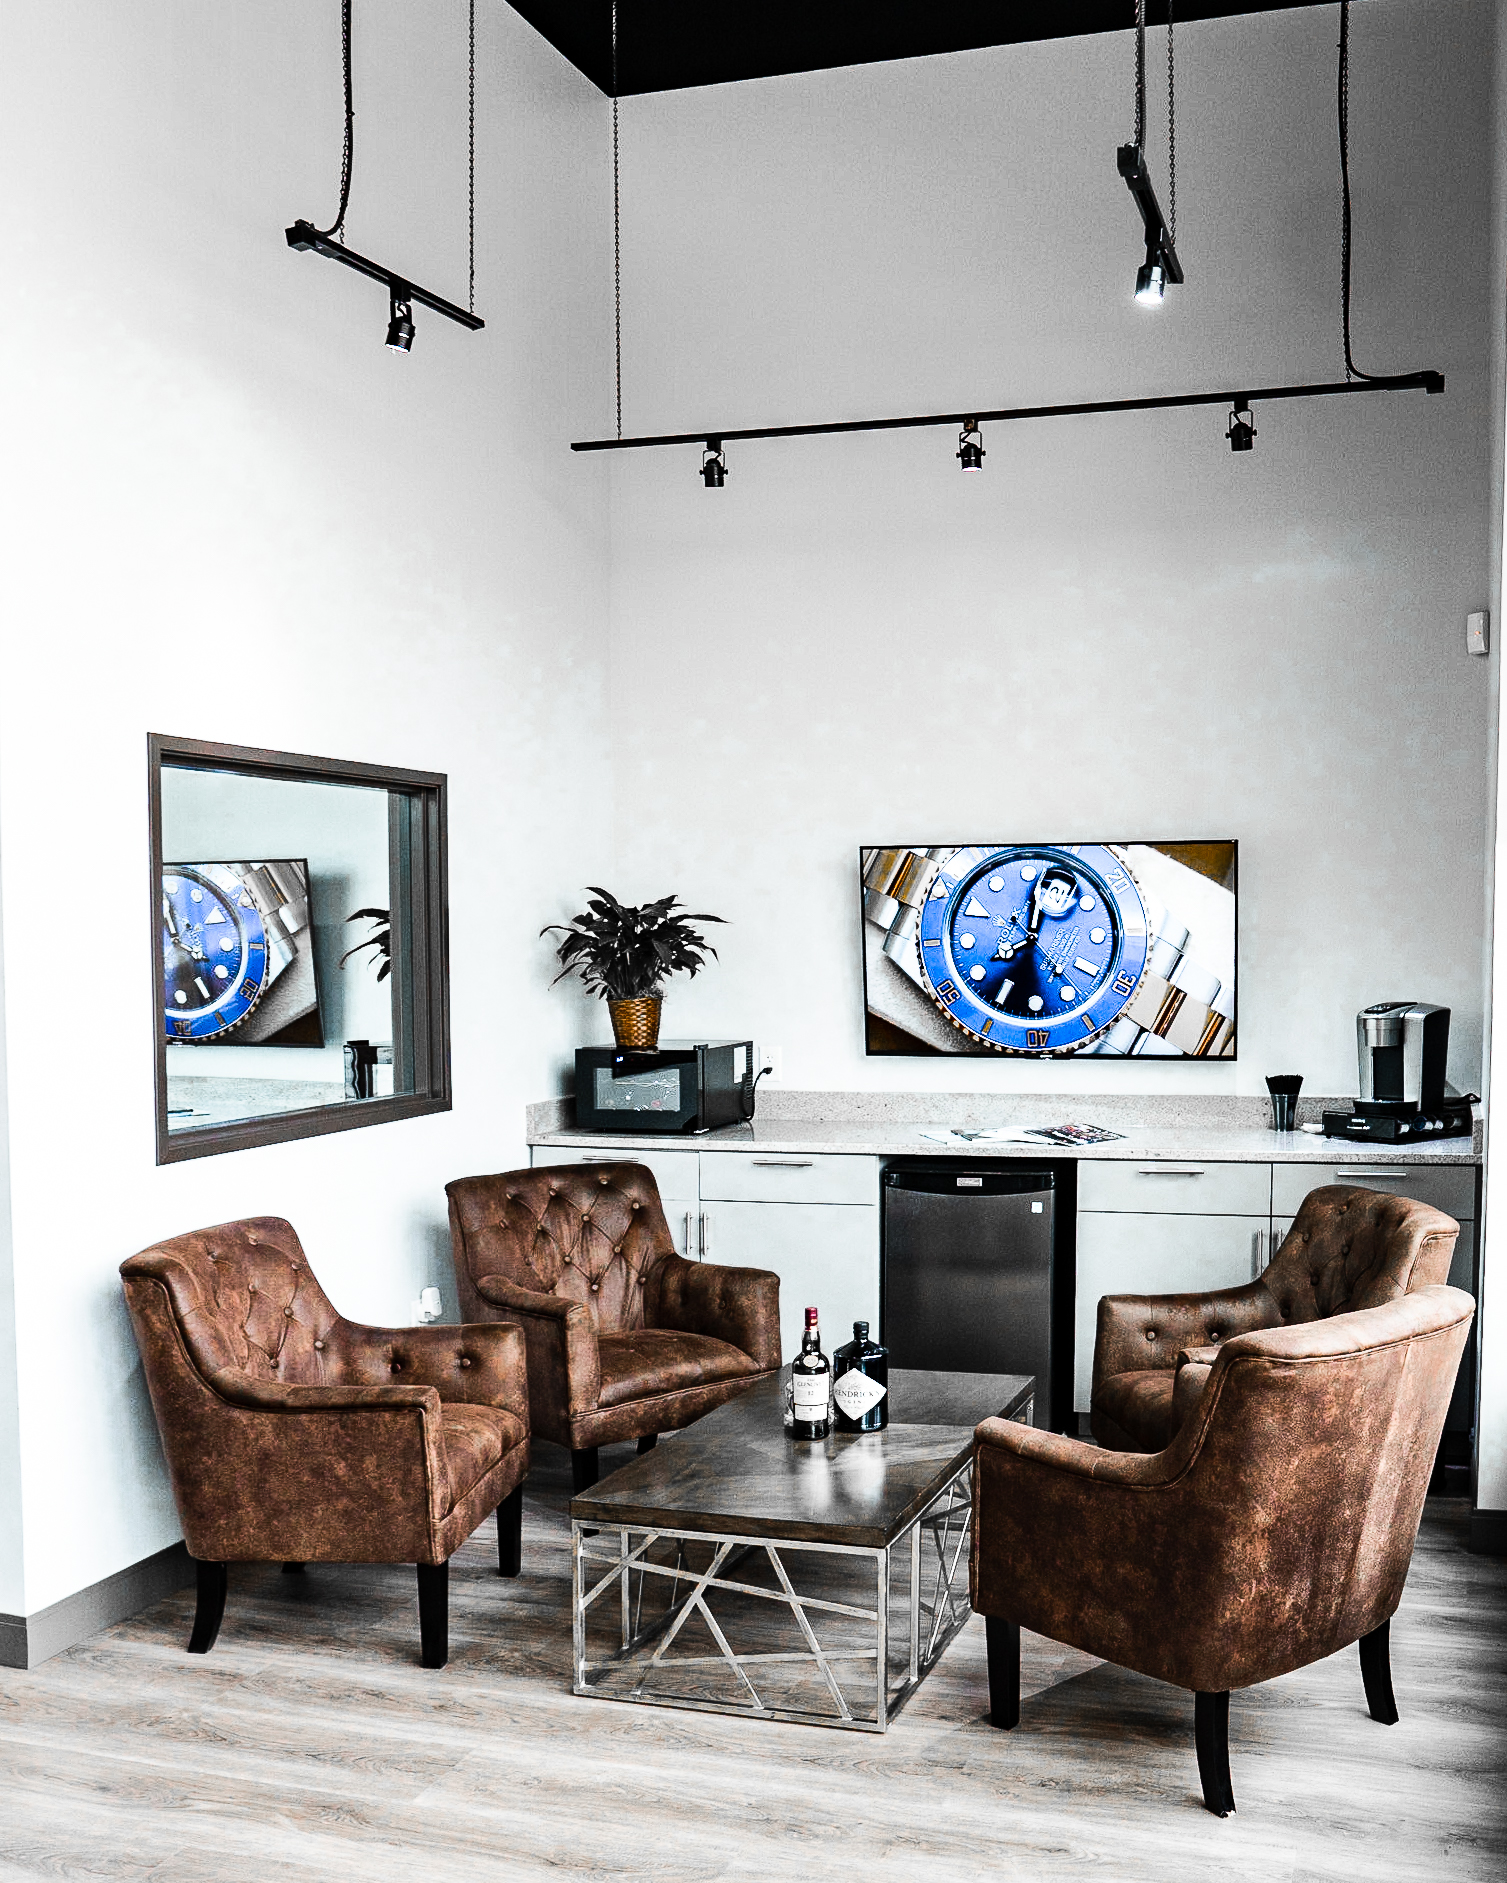 Picture of interior of Noah's Fine Jewelry & Watches store